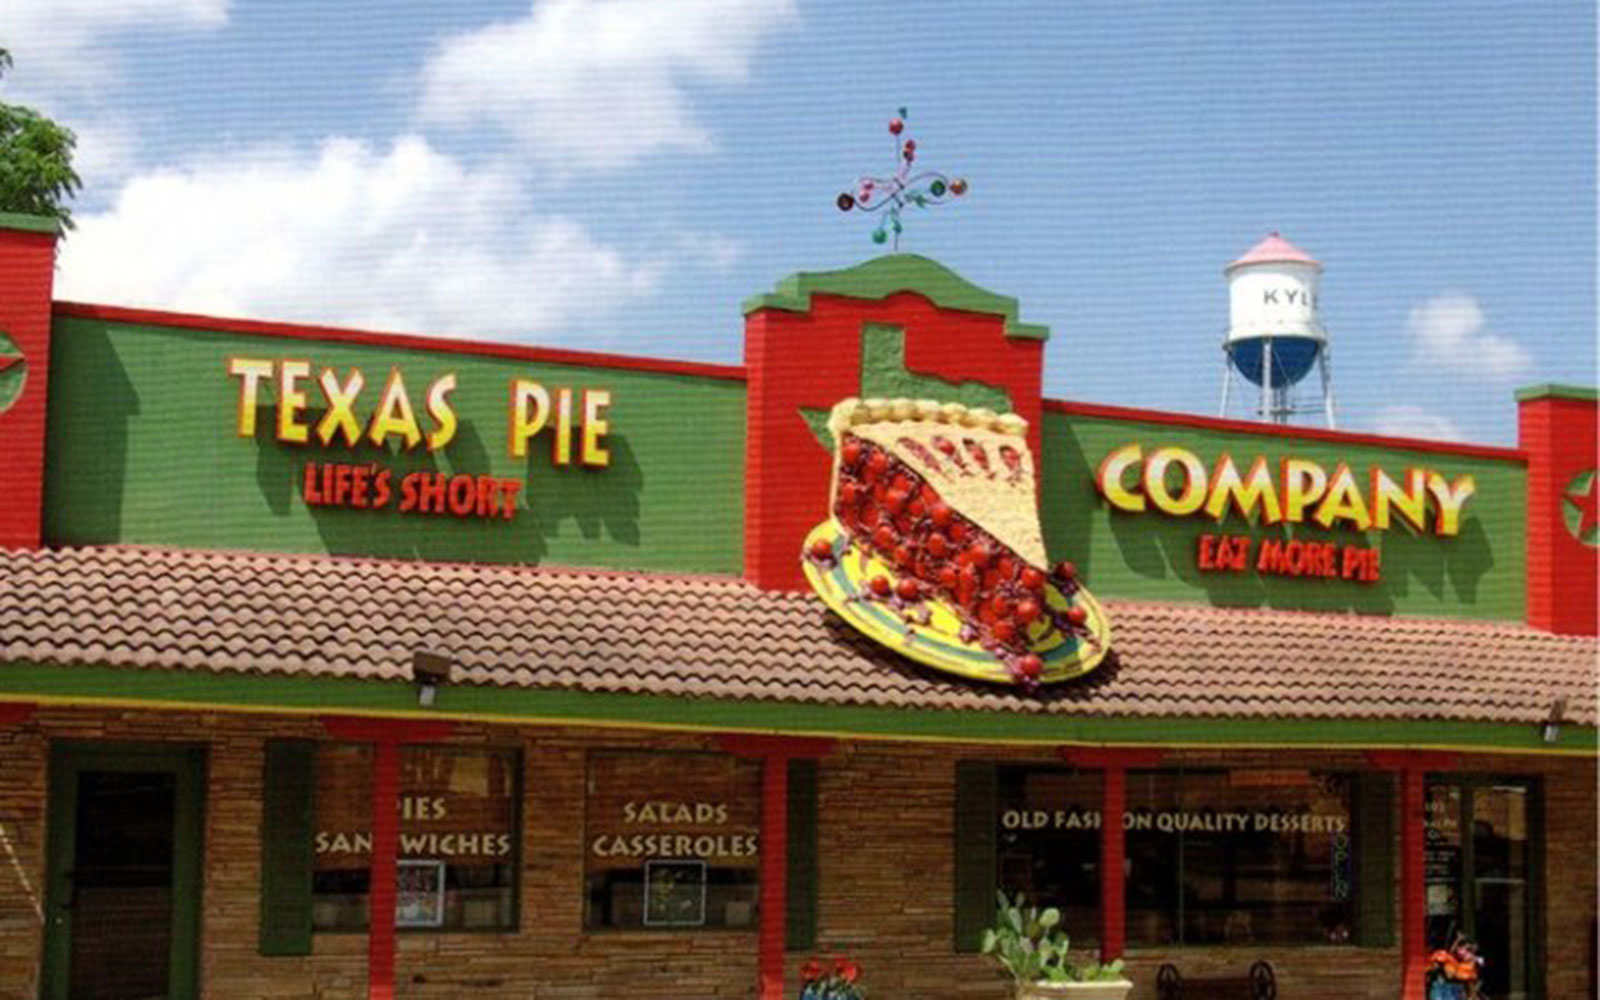 The Texas Pie Company in Kyle, Texas